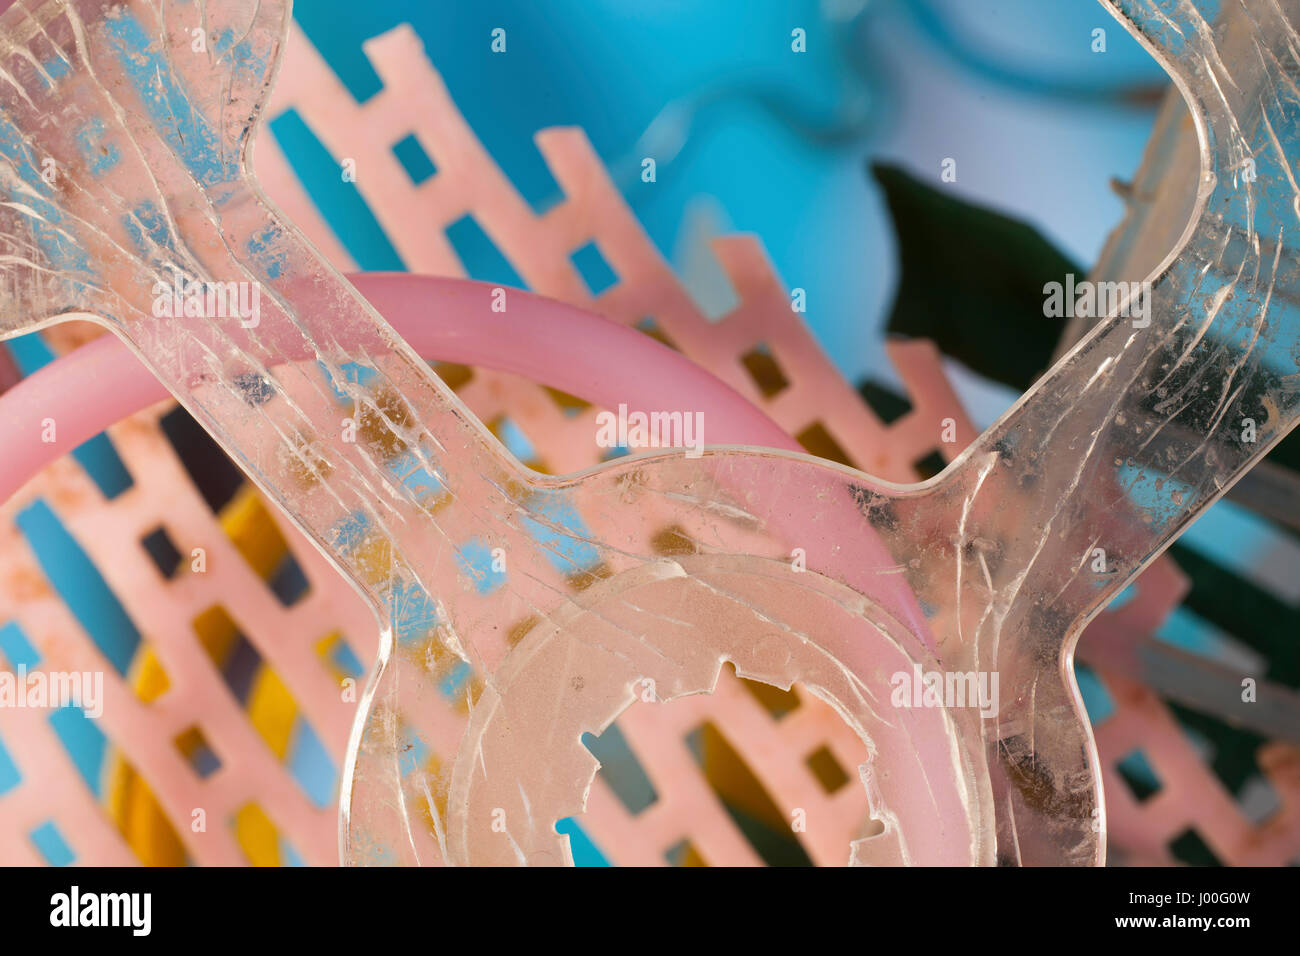 Macro composition of various bits of plastic trash - Stock Image